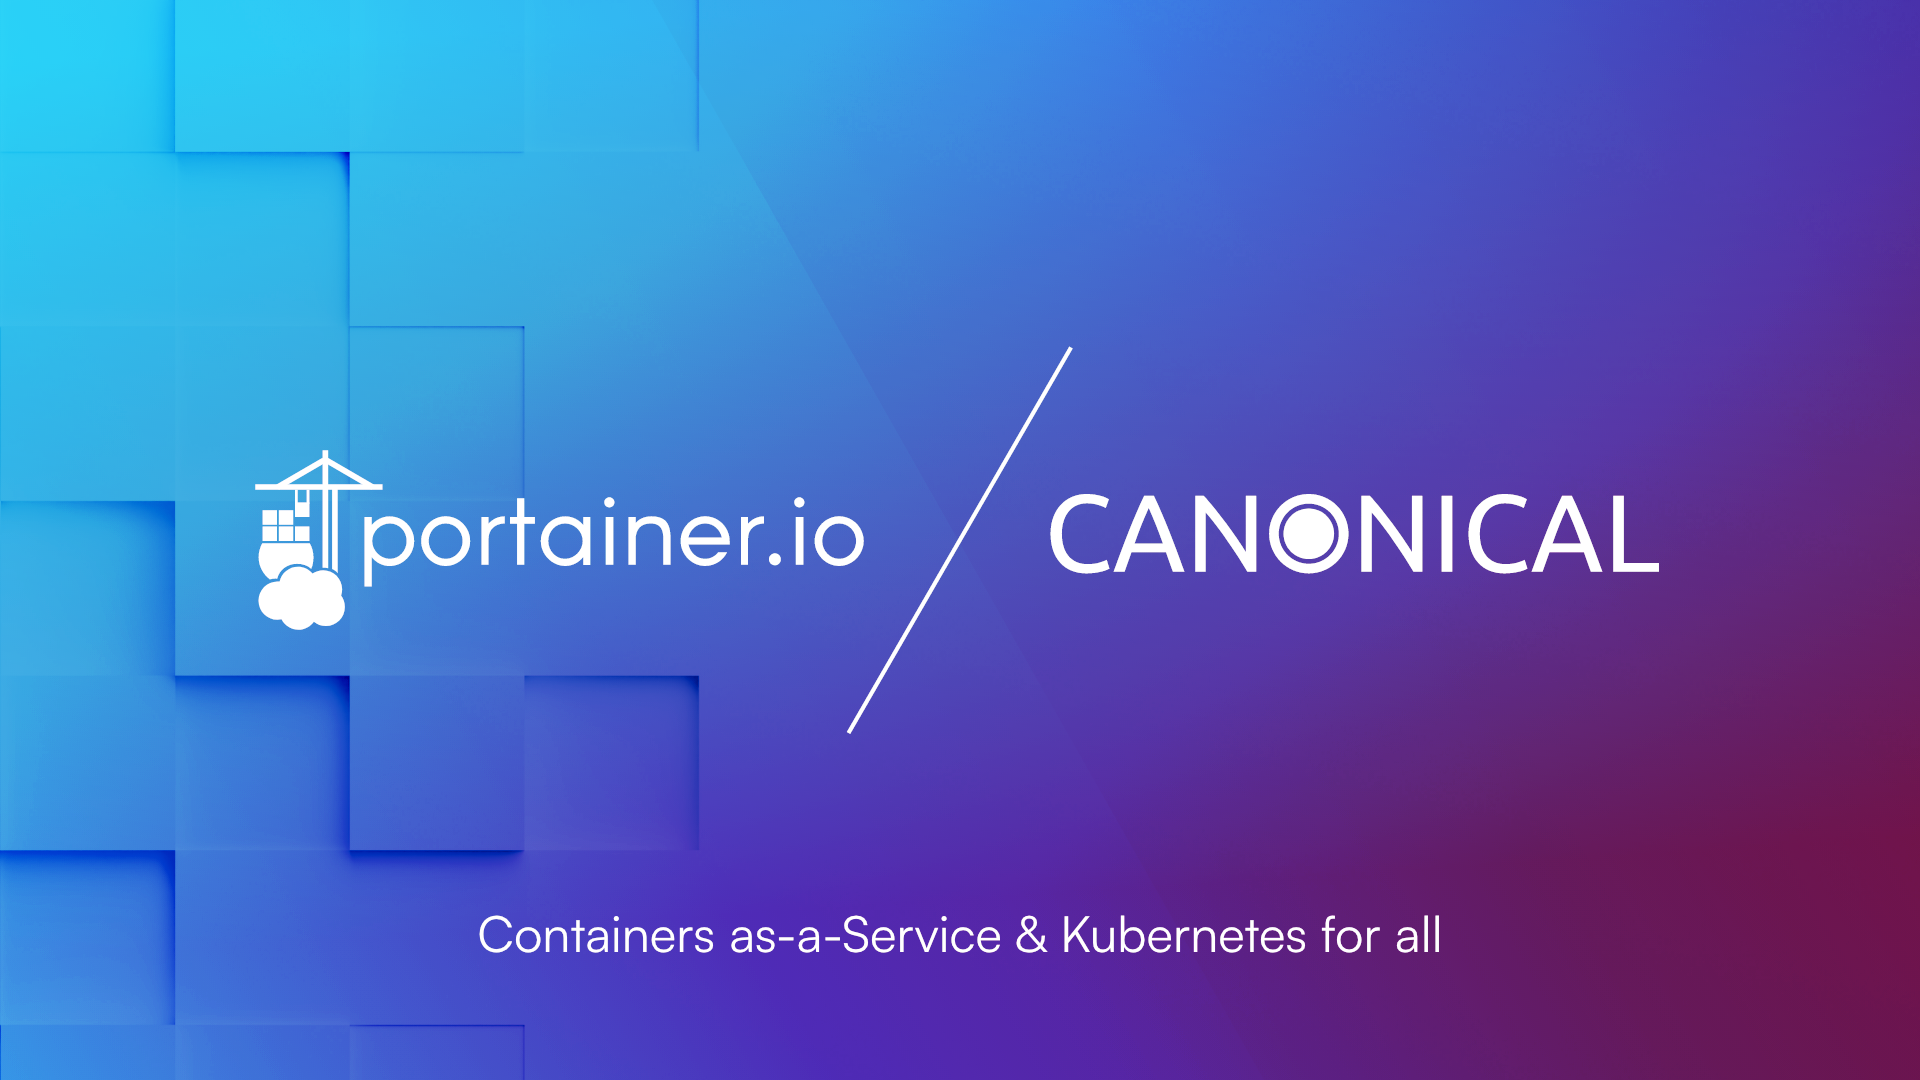 Portainer and Canonical Expand Partnership Launching Business Charm for Charmed Kubernetes